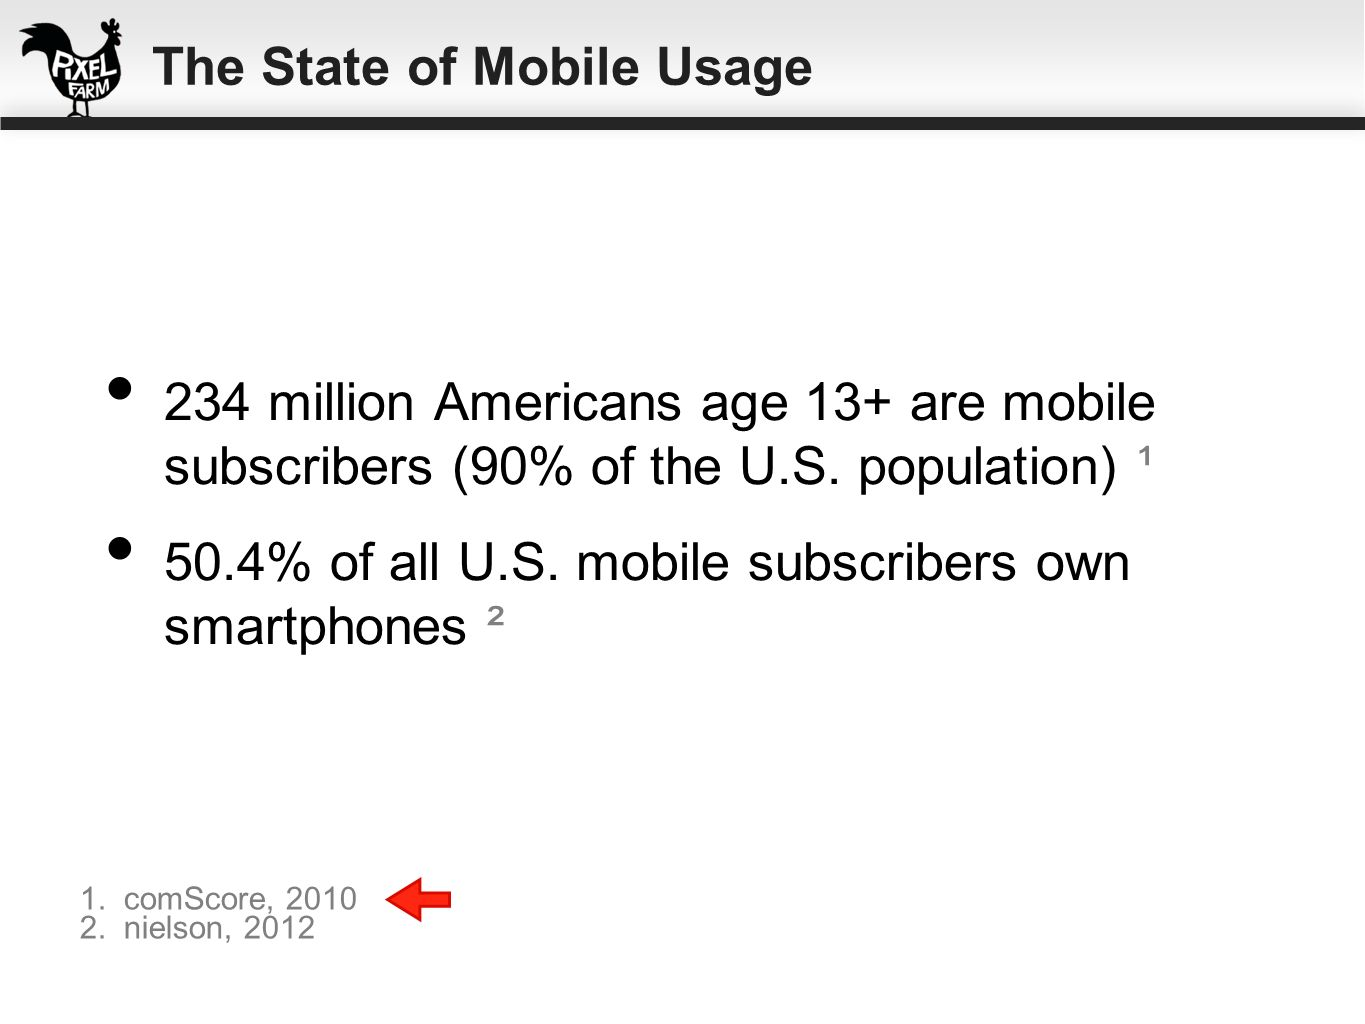 The State of Mobile Usage